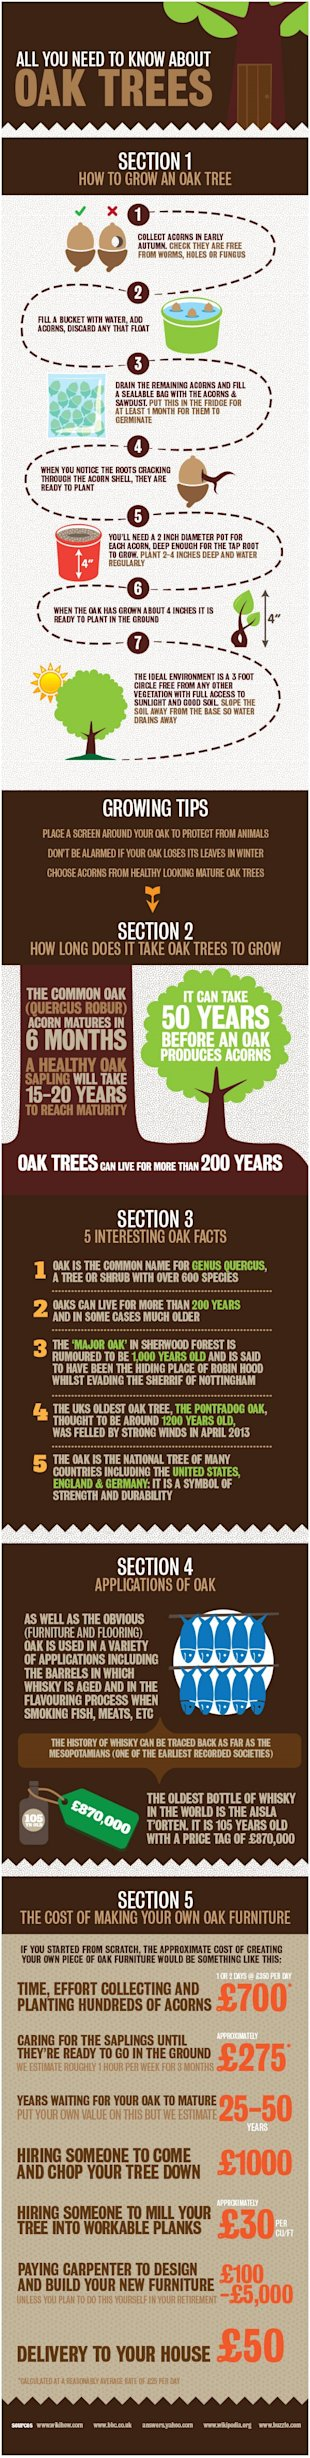 New Furniture: Flat Pack vs Solid Oak vs Grow Your Own image furnitureplusonline oak infographic